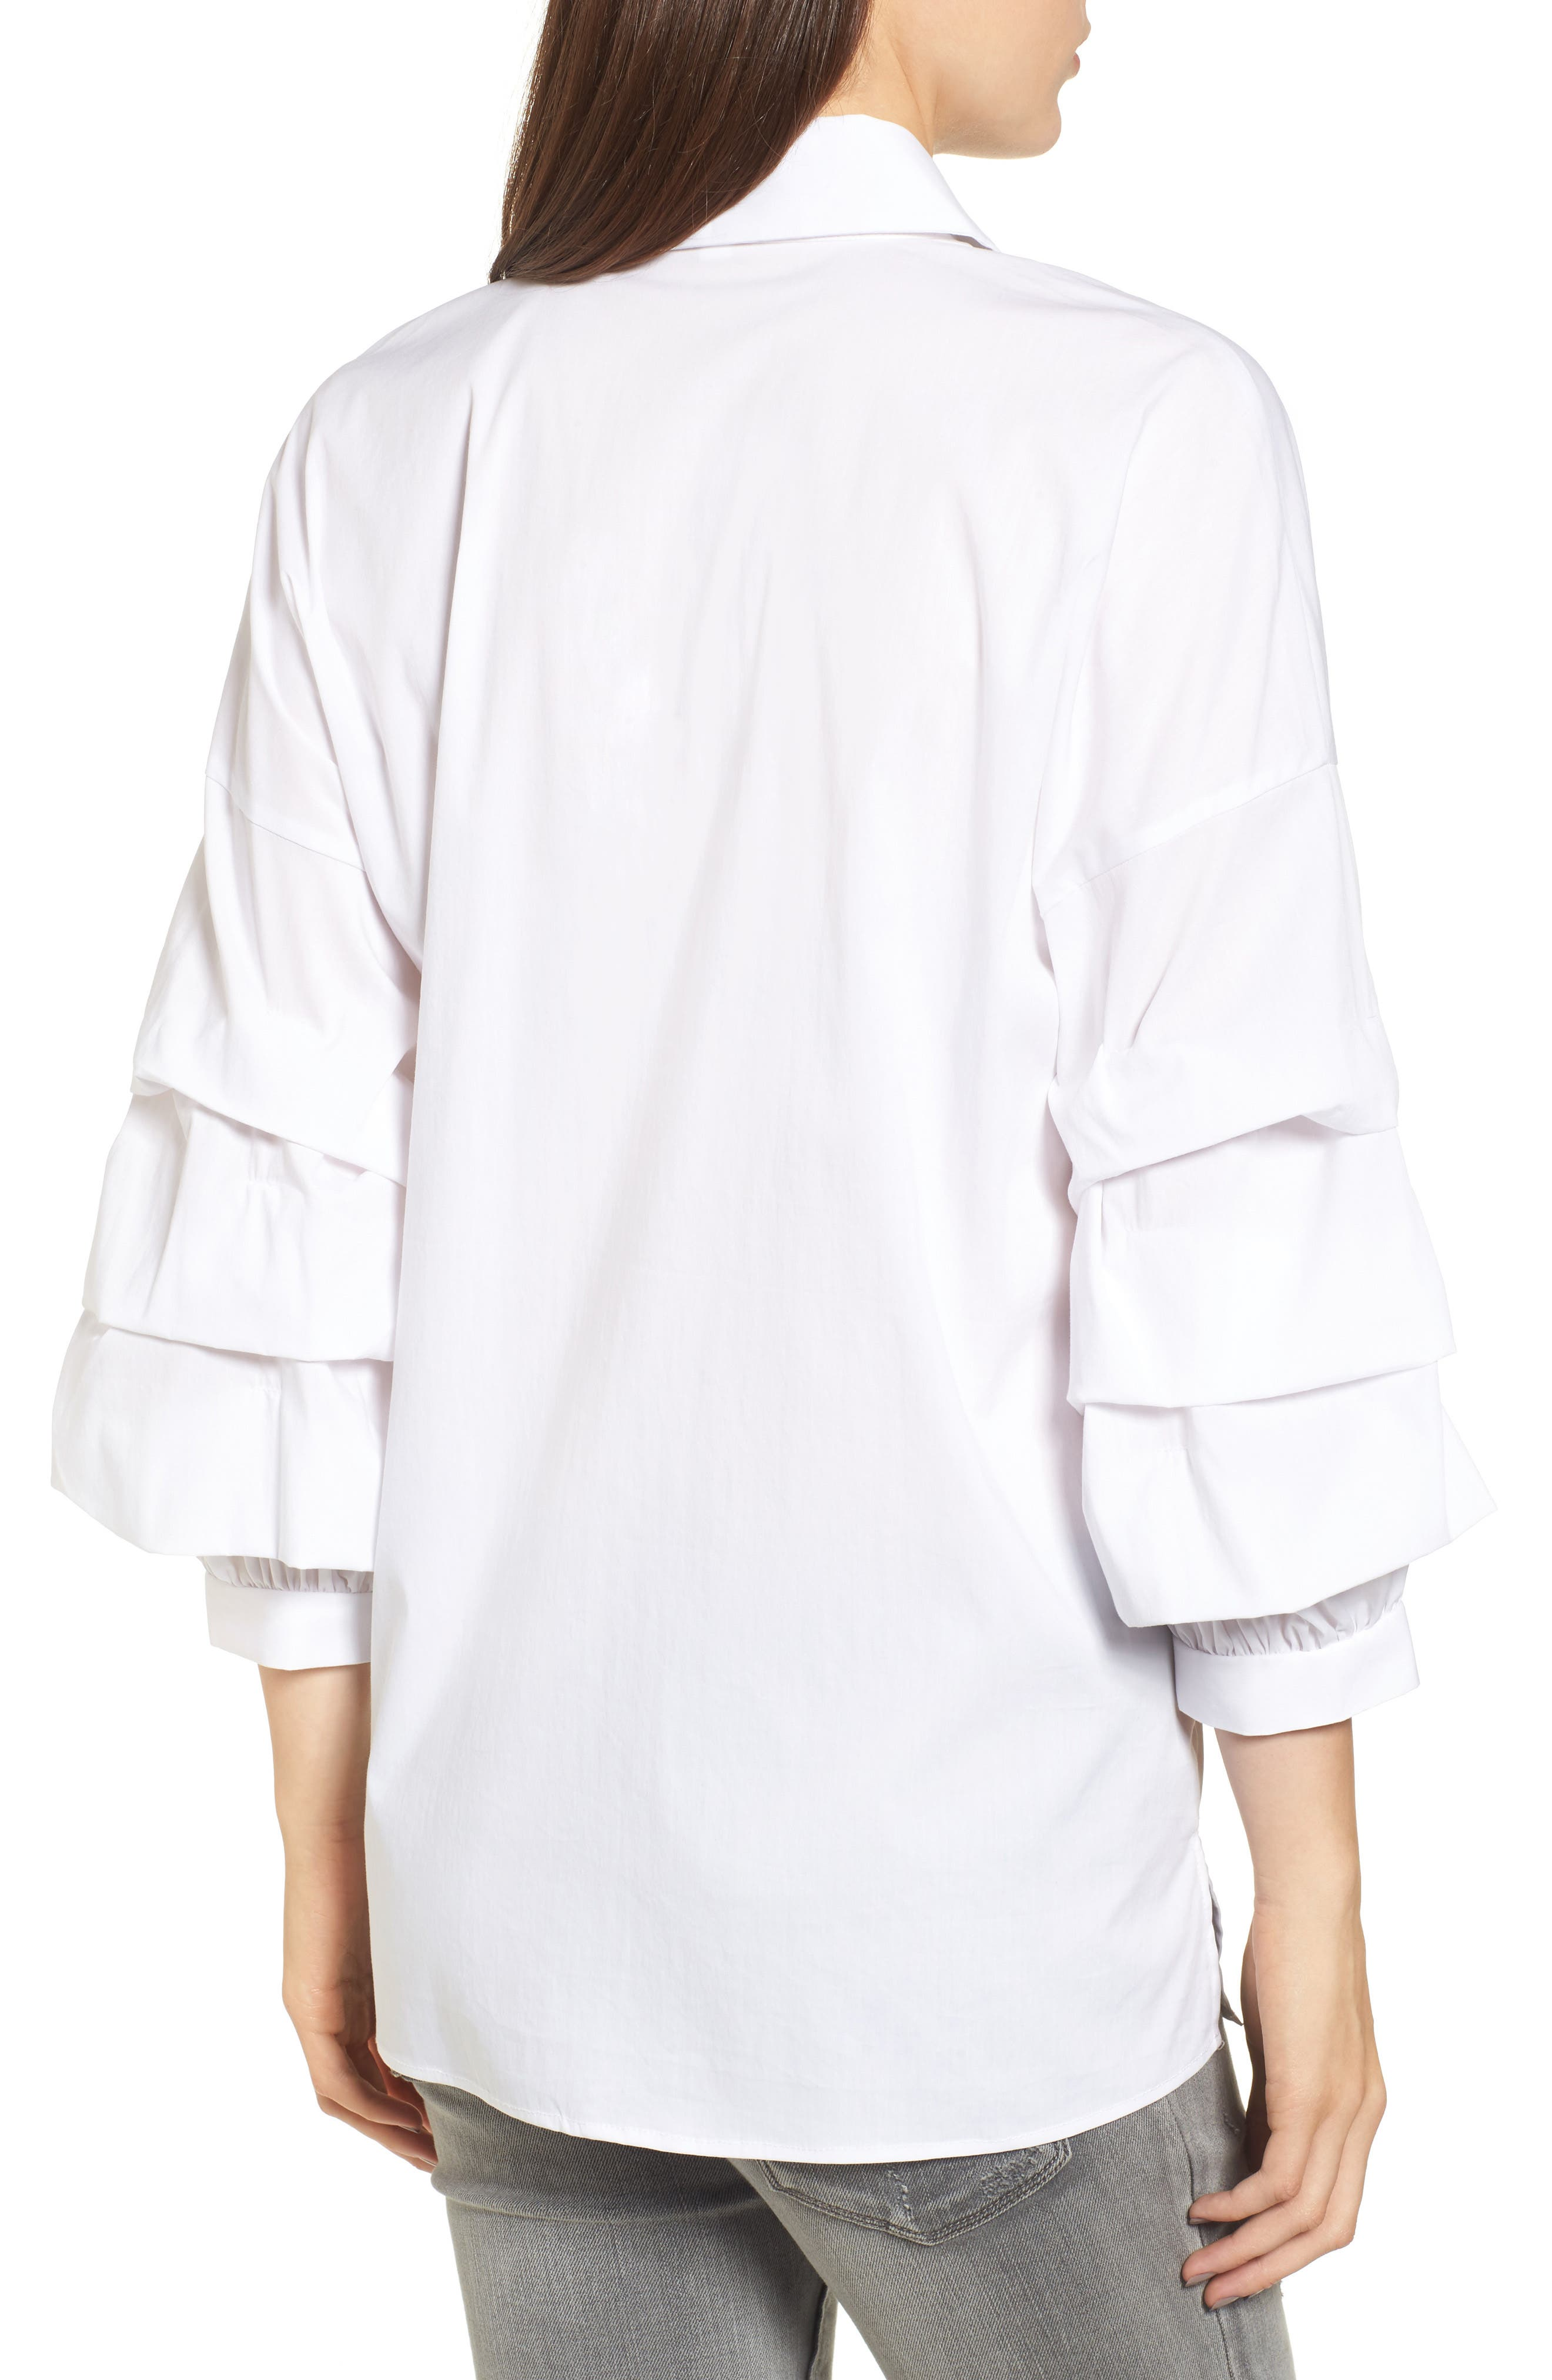 Ruched Sleeve Shirt,                             Alternate thumbnail 2, color,                             White